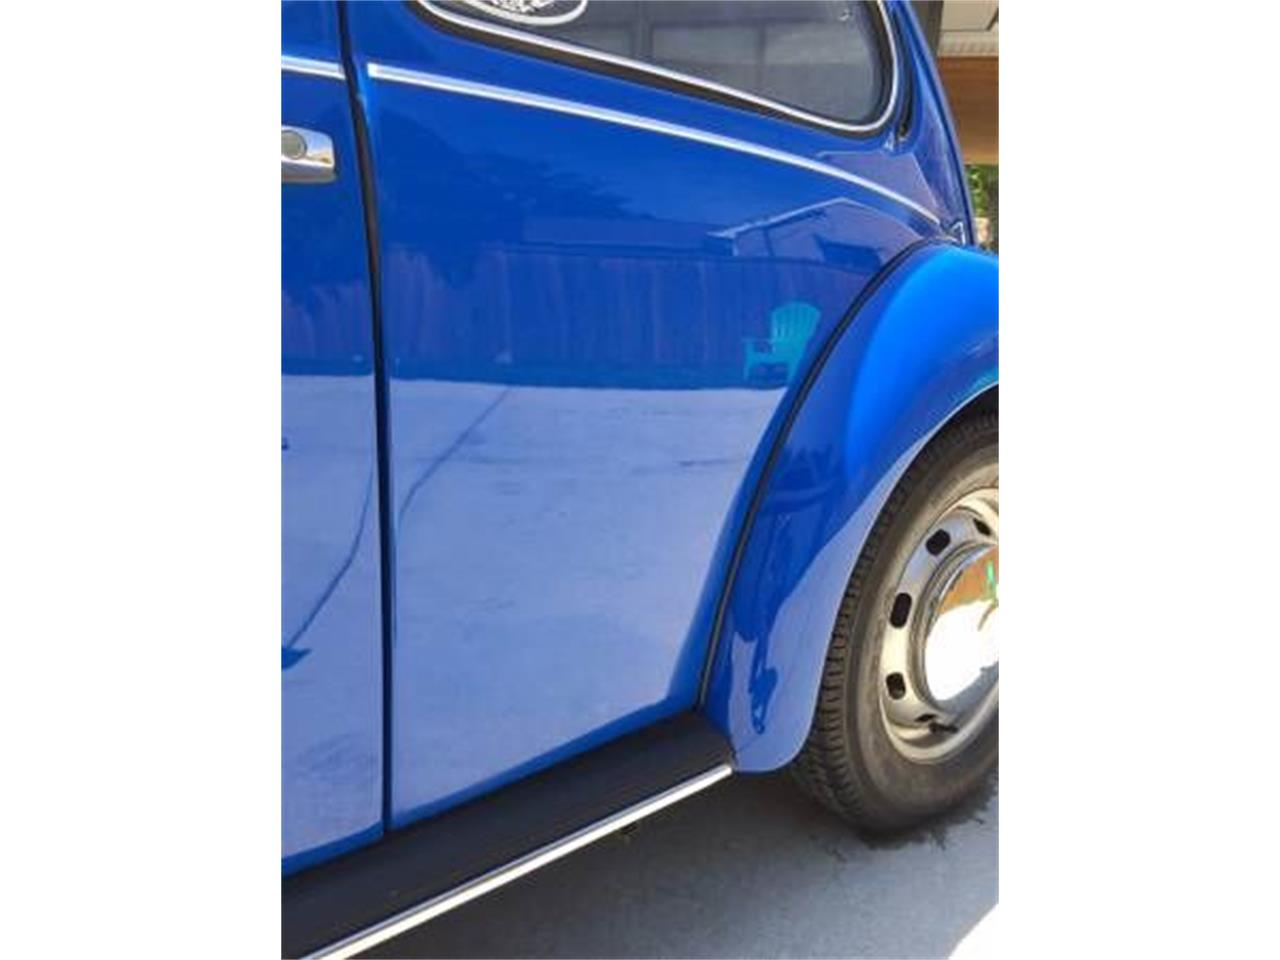 1972 Volkswagen Super Beetle for sale in Cadillac, MI – photo 19